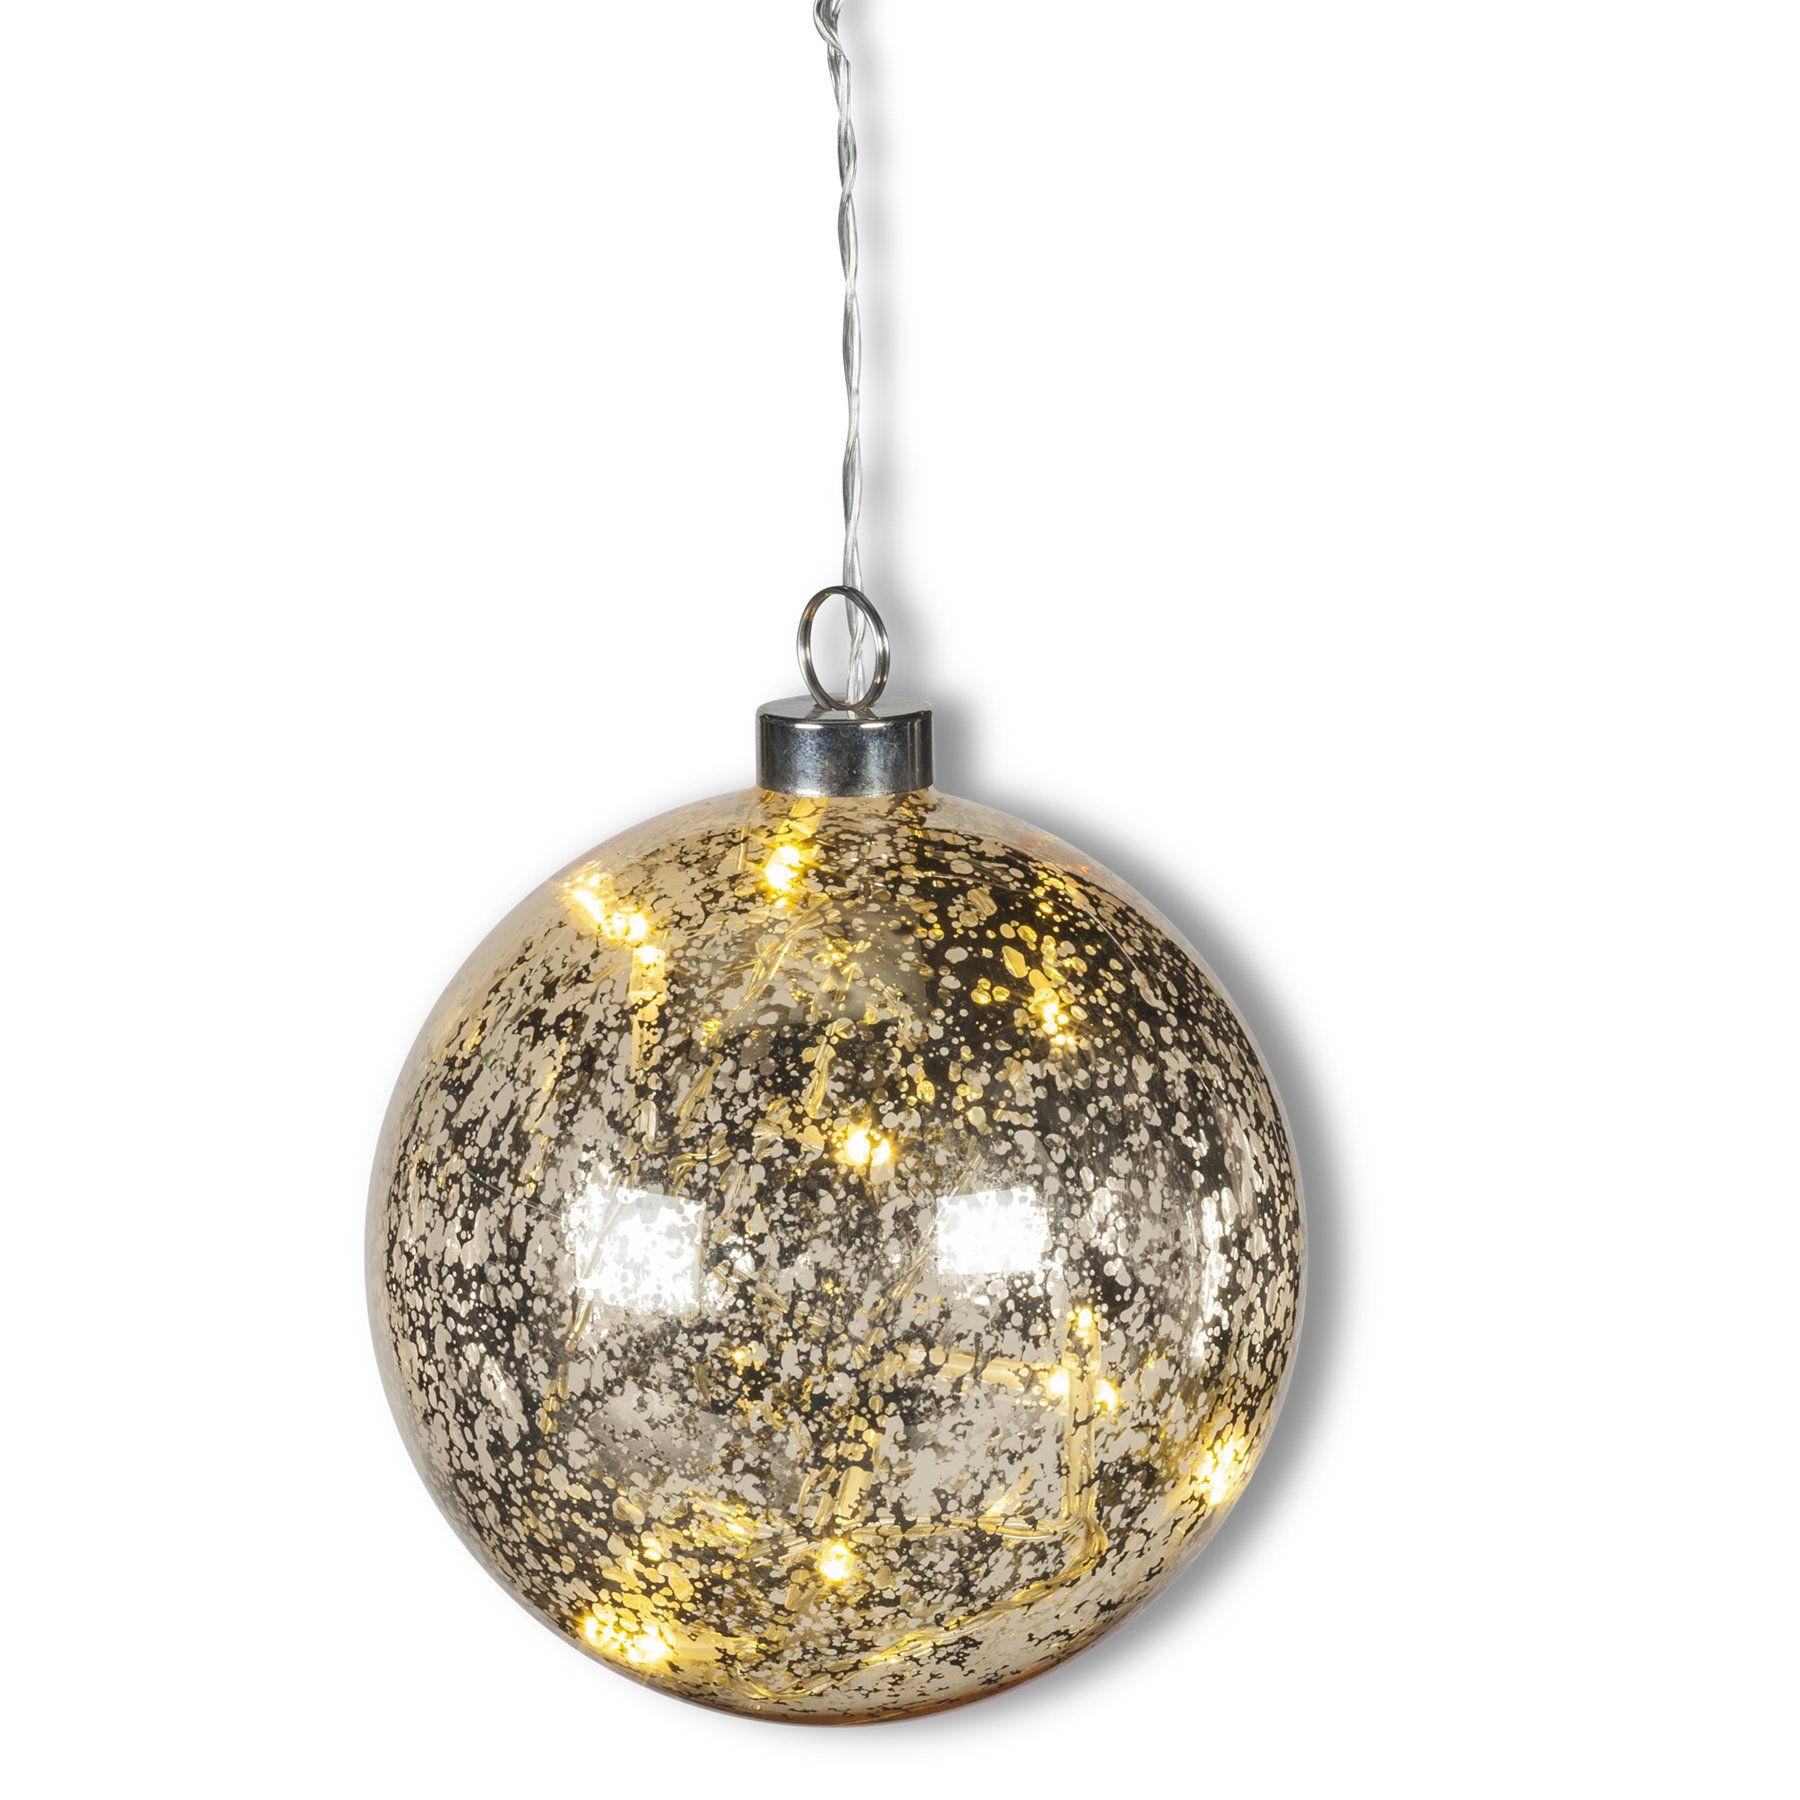 Have A Holly, Jolly Throwback Christmas With This Vintage Inspired Ornament